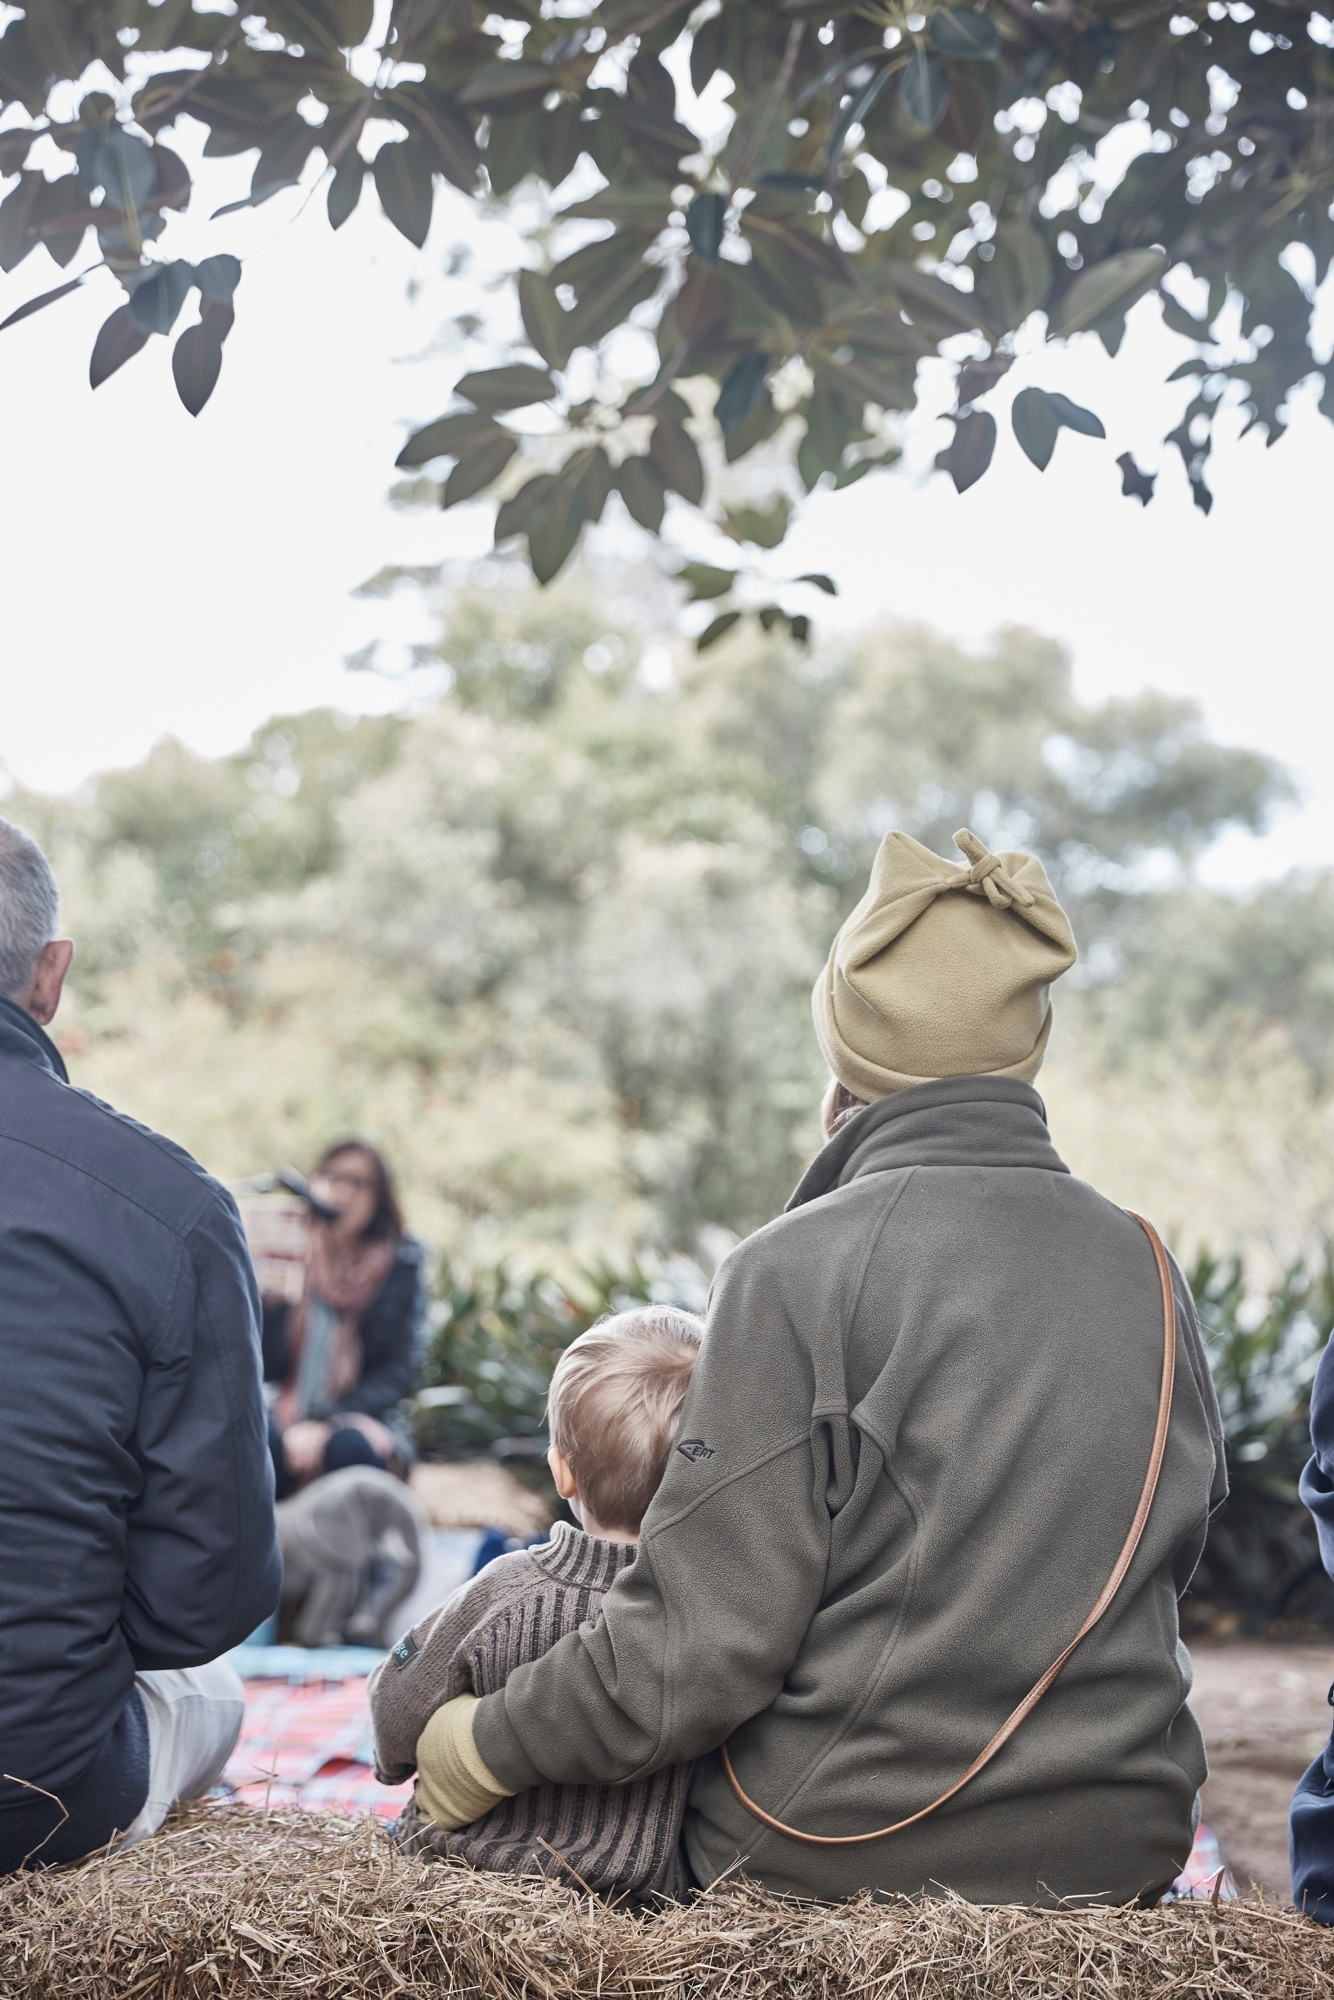 People seated on rugs under tree in outdoor setting.